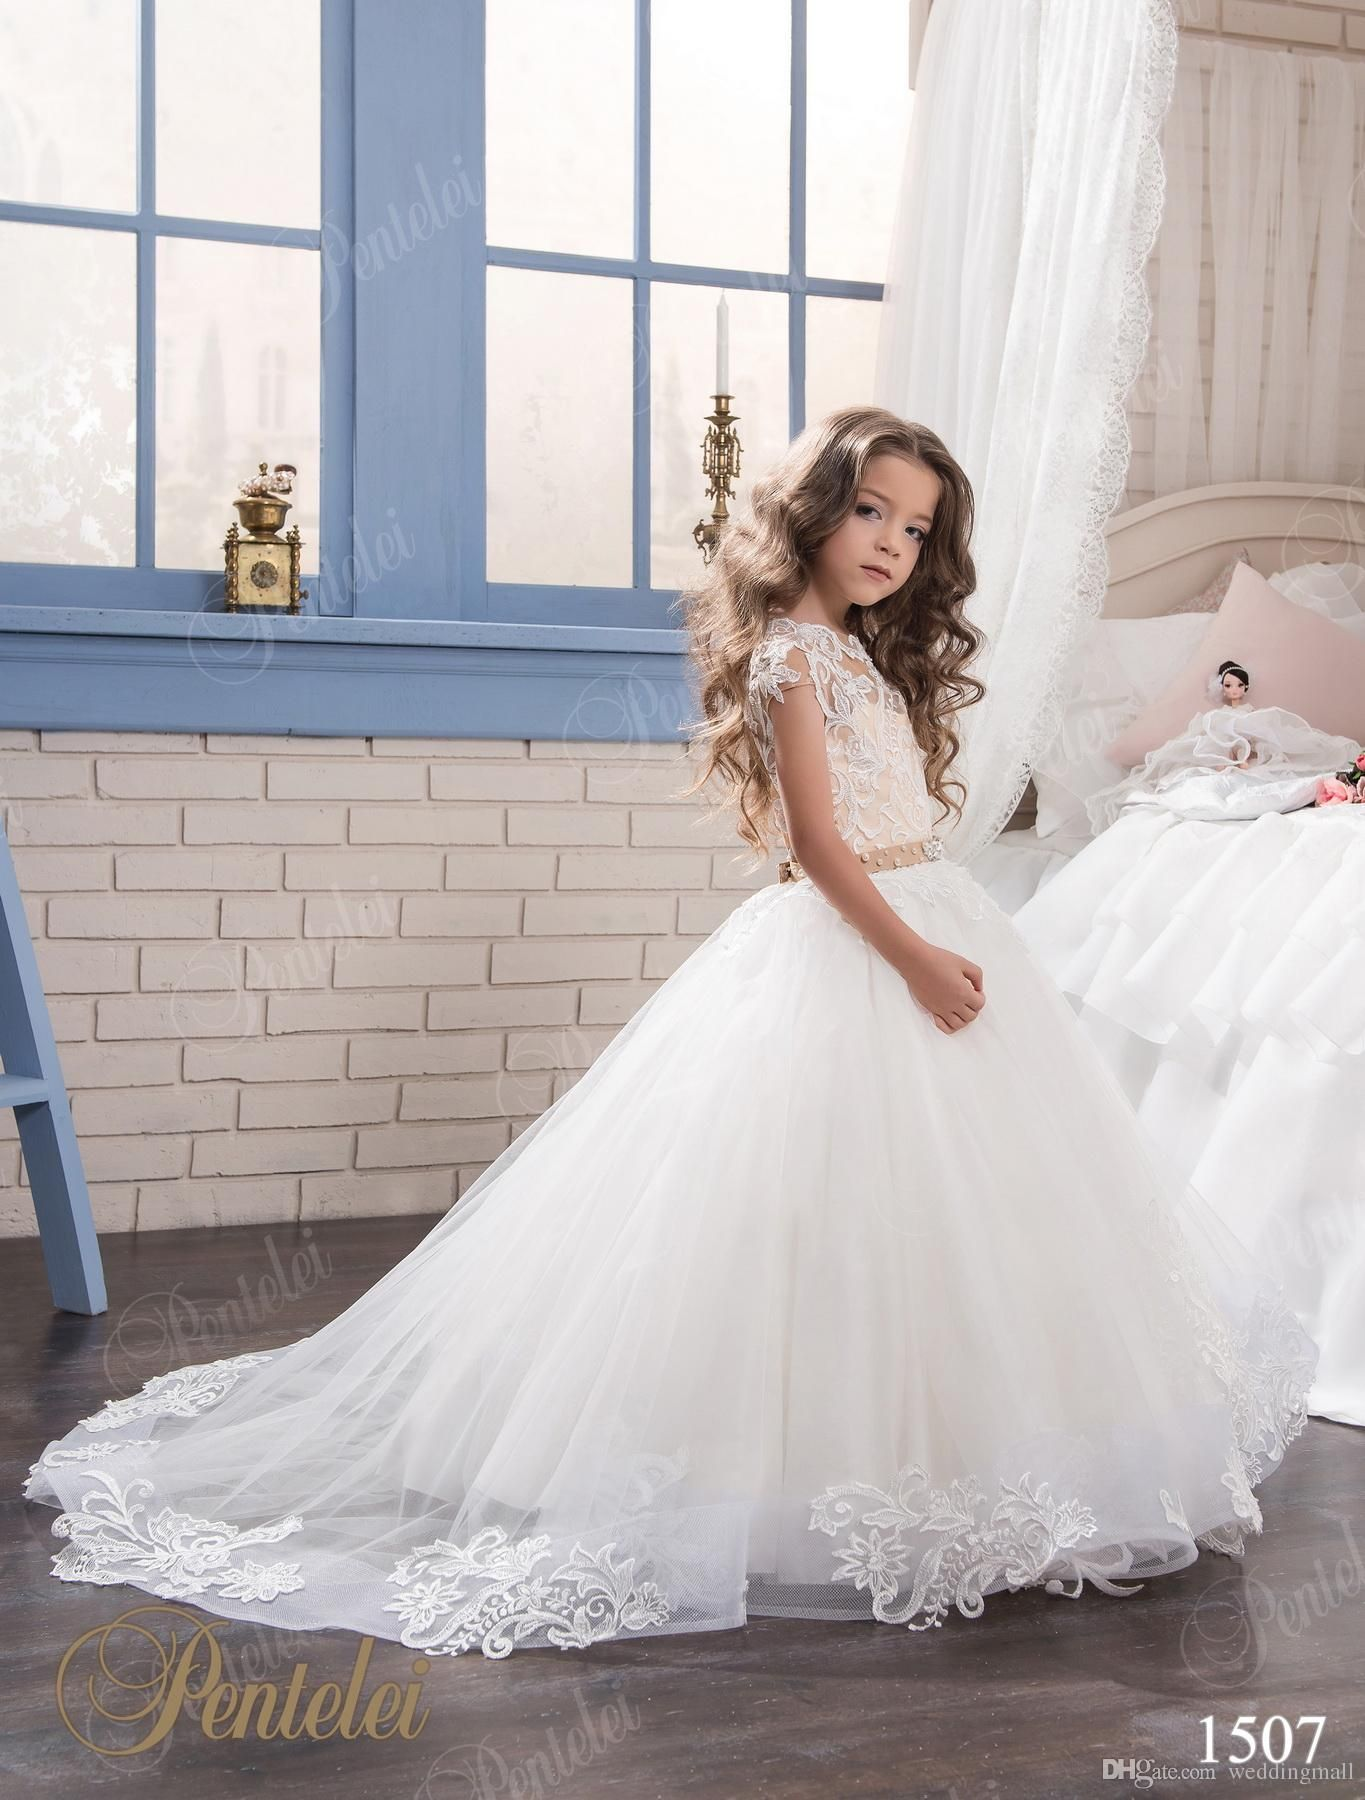 Princess lace ball gown arabic 2017 flower girl dresses vintage princess lace ball gown arabic 2017 flower girl dresses vintage tulle child dresses beautiful flower girl ombrellifo Choice Image